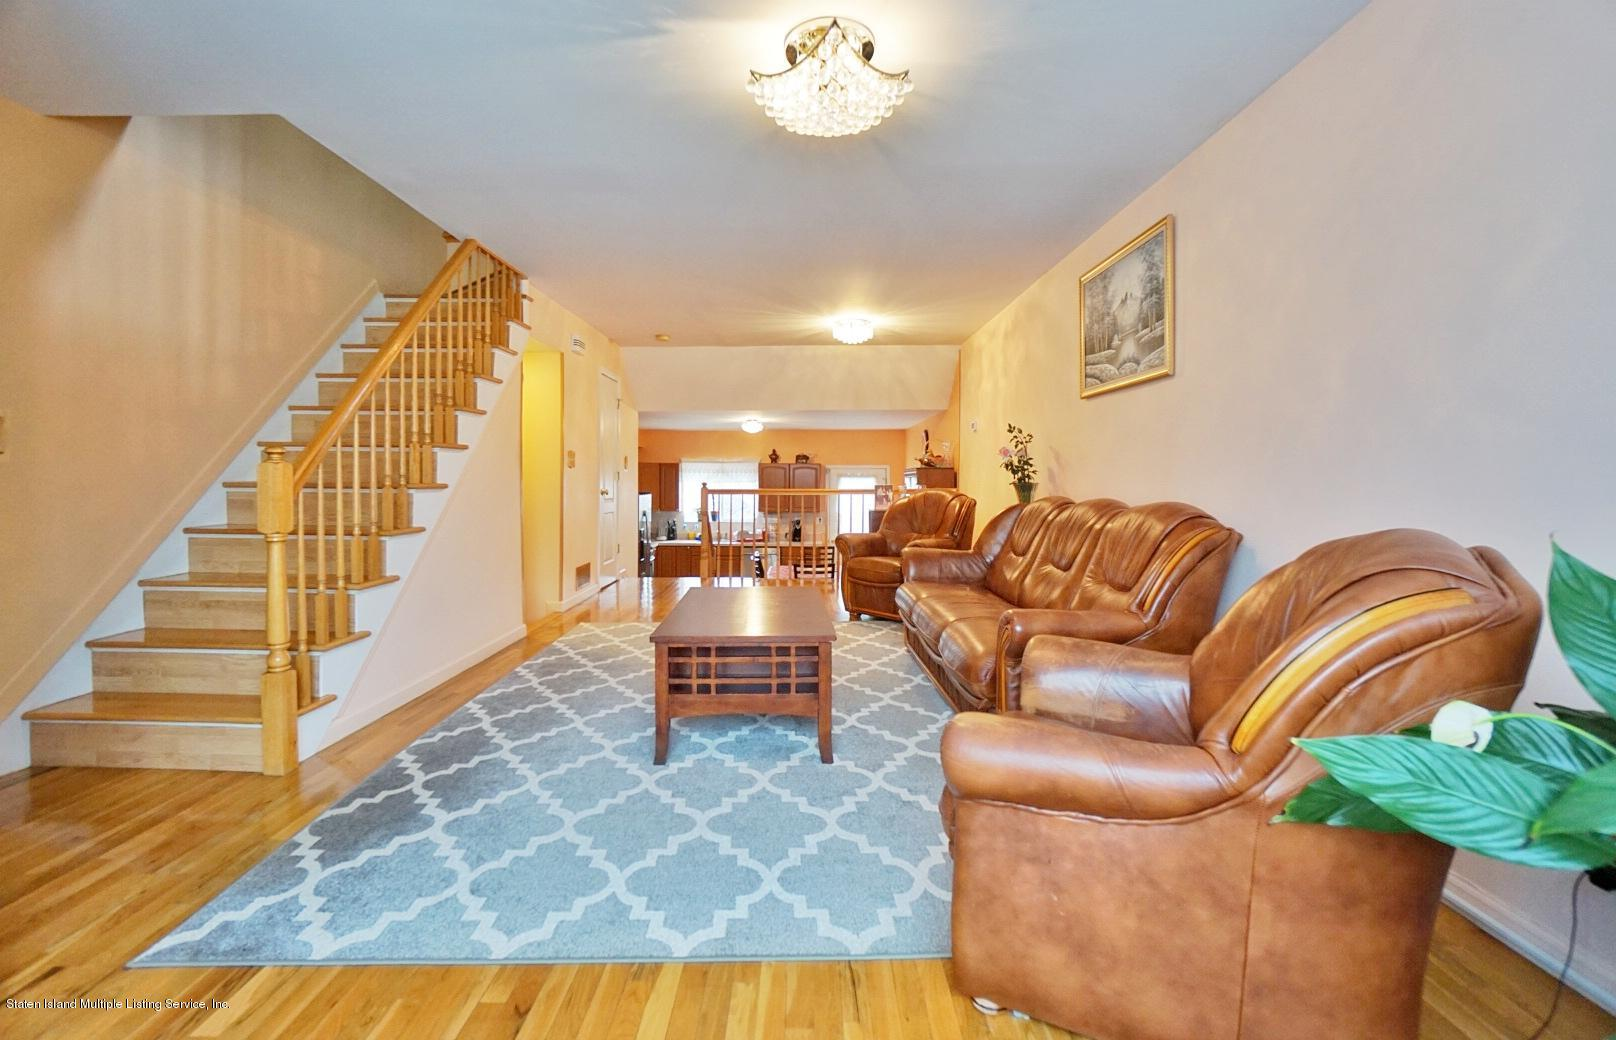 Single Family - Attached 30 Cranberry Court  Staten Island, NY 10309, MLS-1135421-4